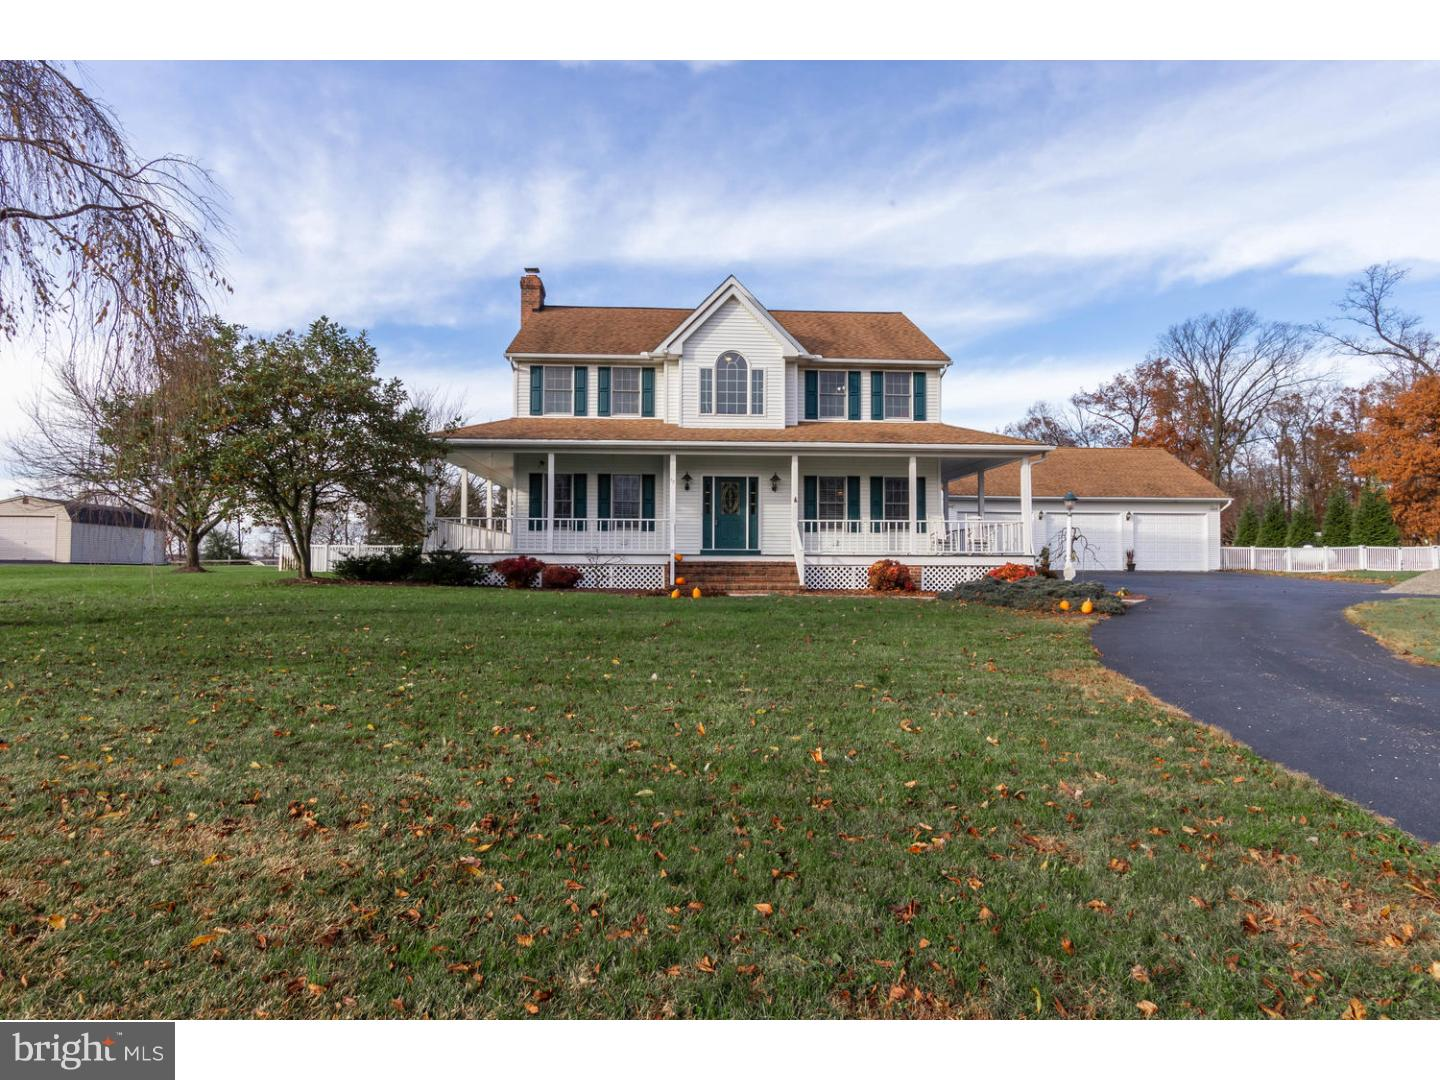 57 UPPER VALLEY ROAD, CHRISTIANA, PA 17509